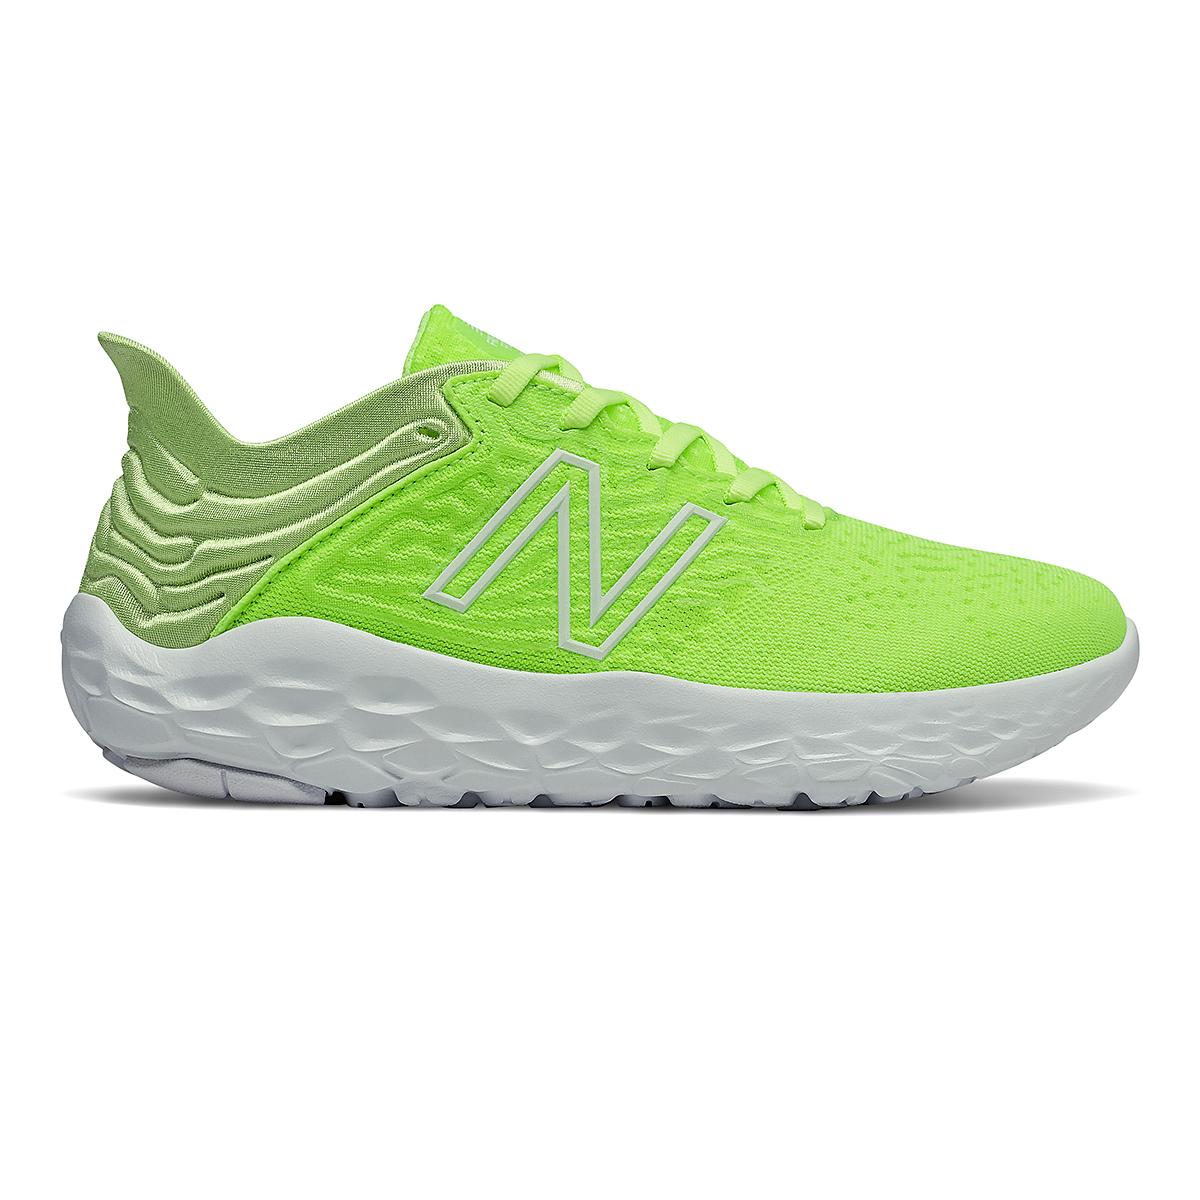 Women's New Balance Beacon V3 Running Shoe - Color: Lime Glo - Size: 6 - Width: Regular, Lime Glo, large, image 1